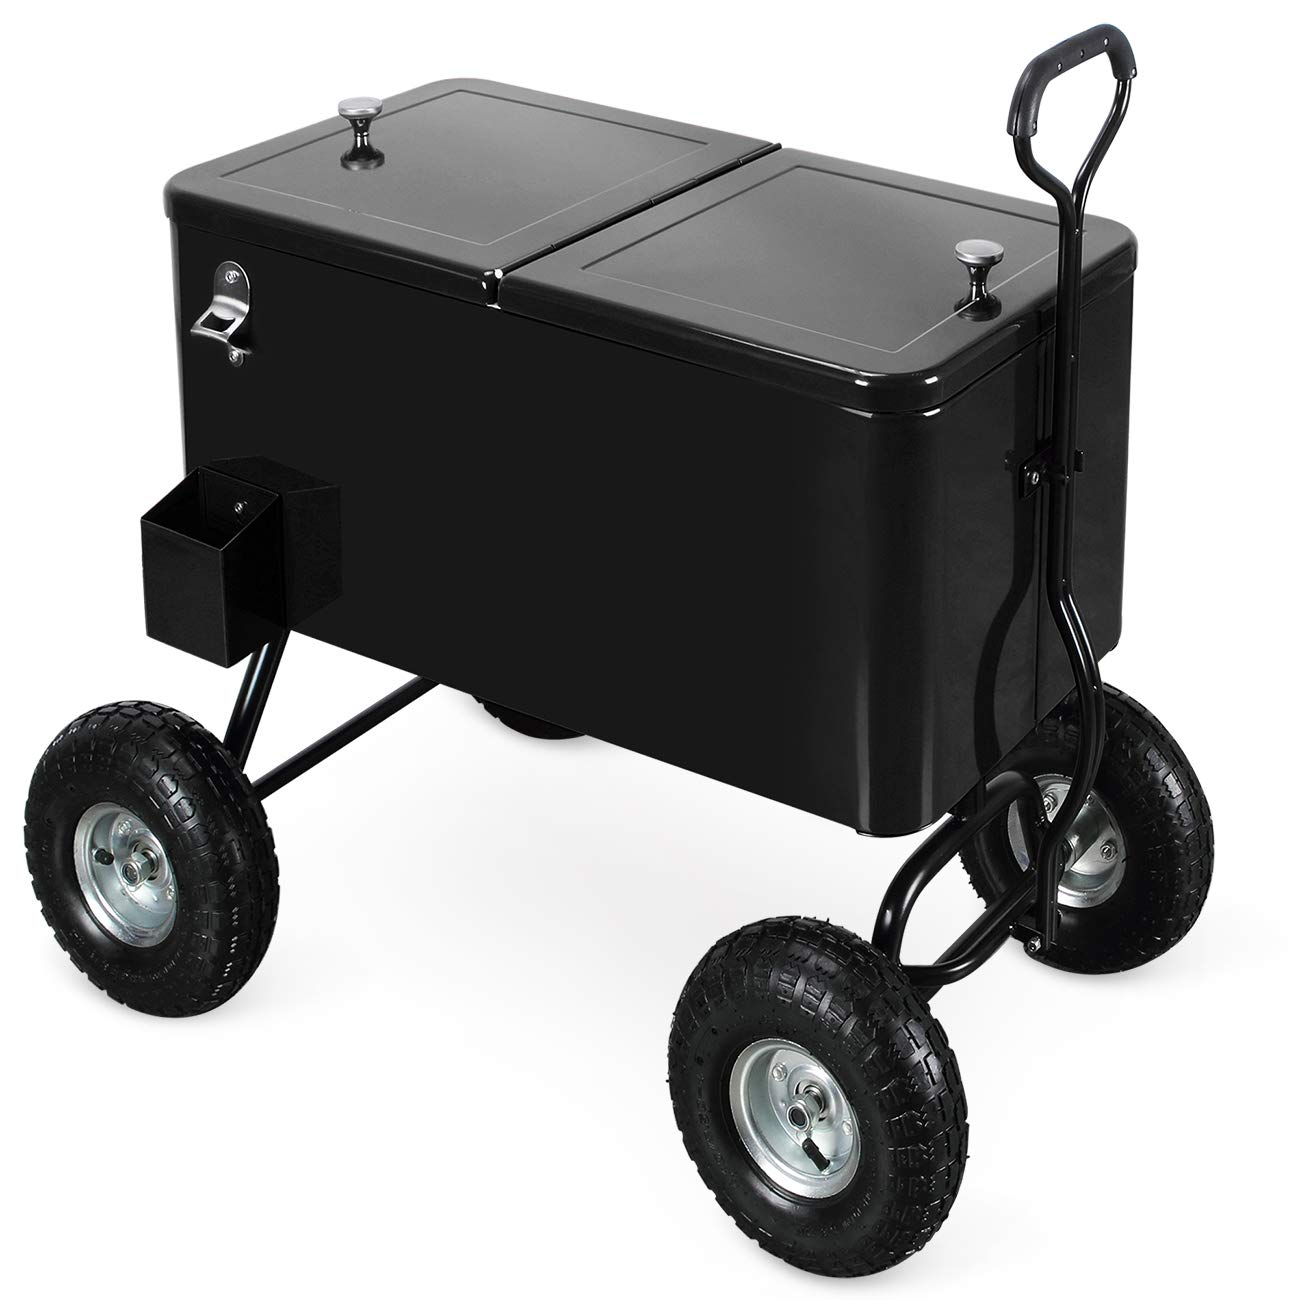 Belleze 80 Qt Party Beach Patio Portable Rolling Ice Chest Drink Cooler Wagon w/Built-in Bottle Opener and Catch Tray